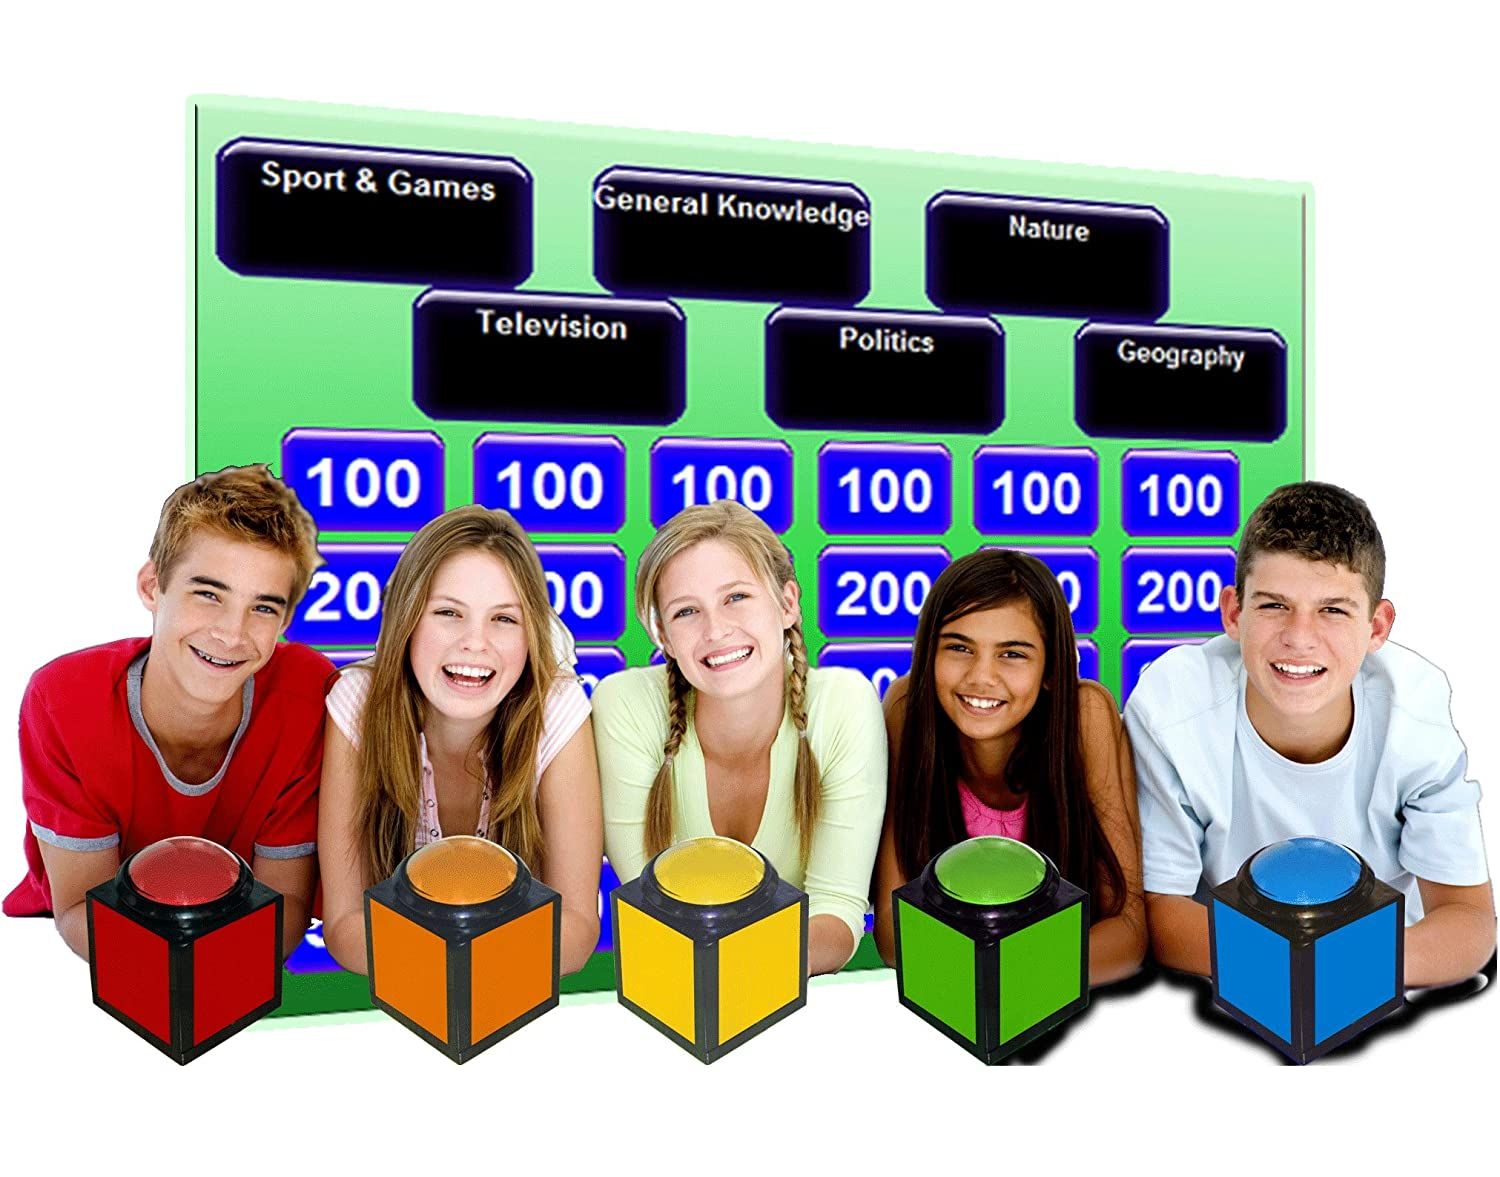 Digigames Inc Wireless Buzzer Quiz Buzzers For 5 Game Show Find Great Deals On Ebay Players Toys Games